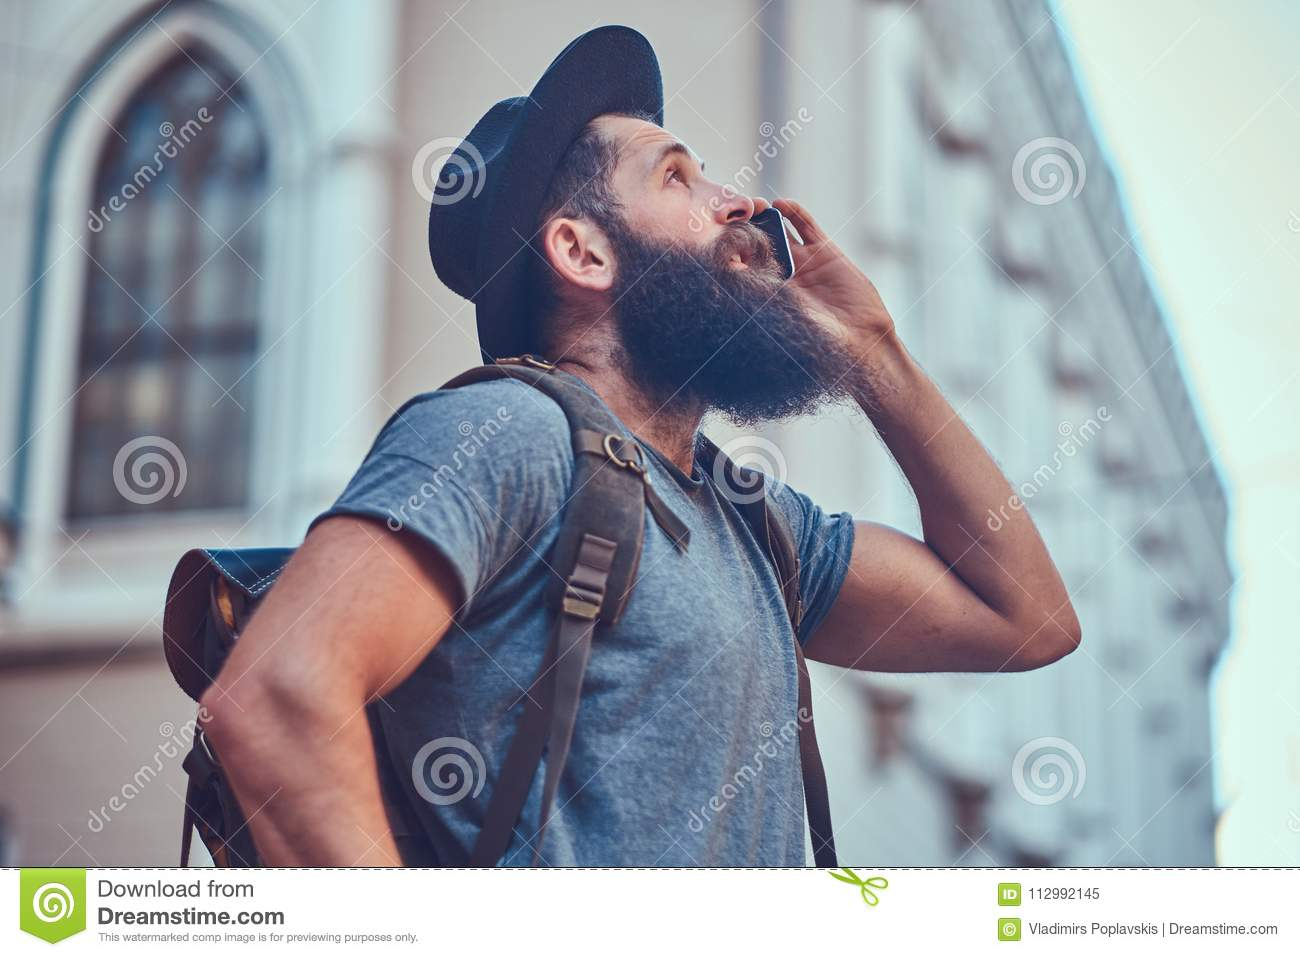 A handsome hipster traveler with a stylish beard and tattoo on his arms dressed in casual clothes, standing on the